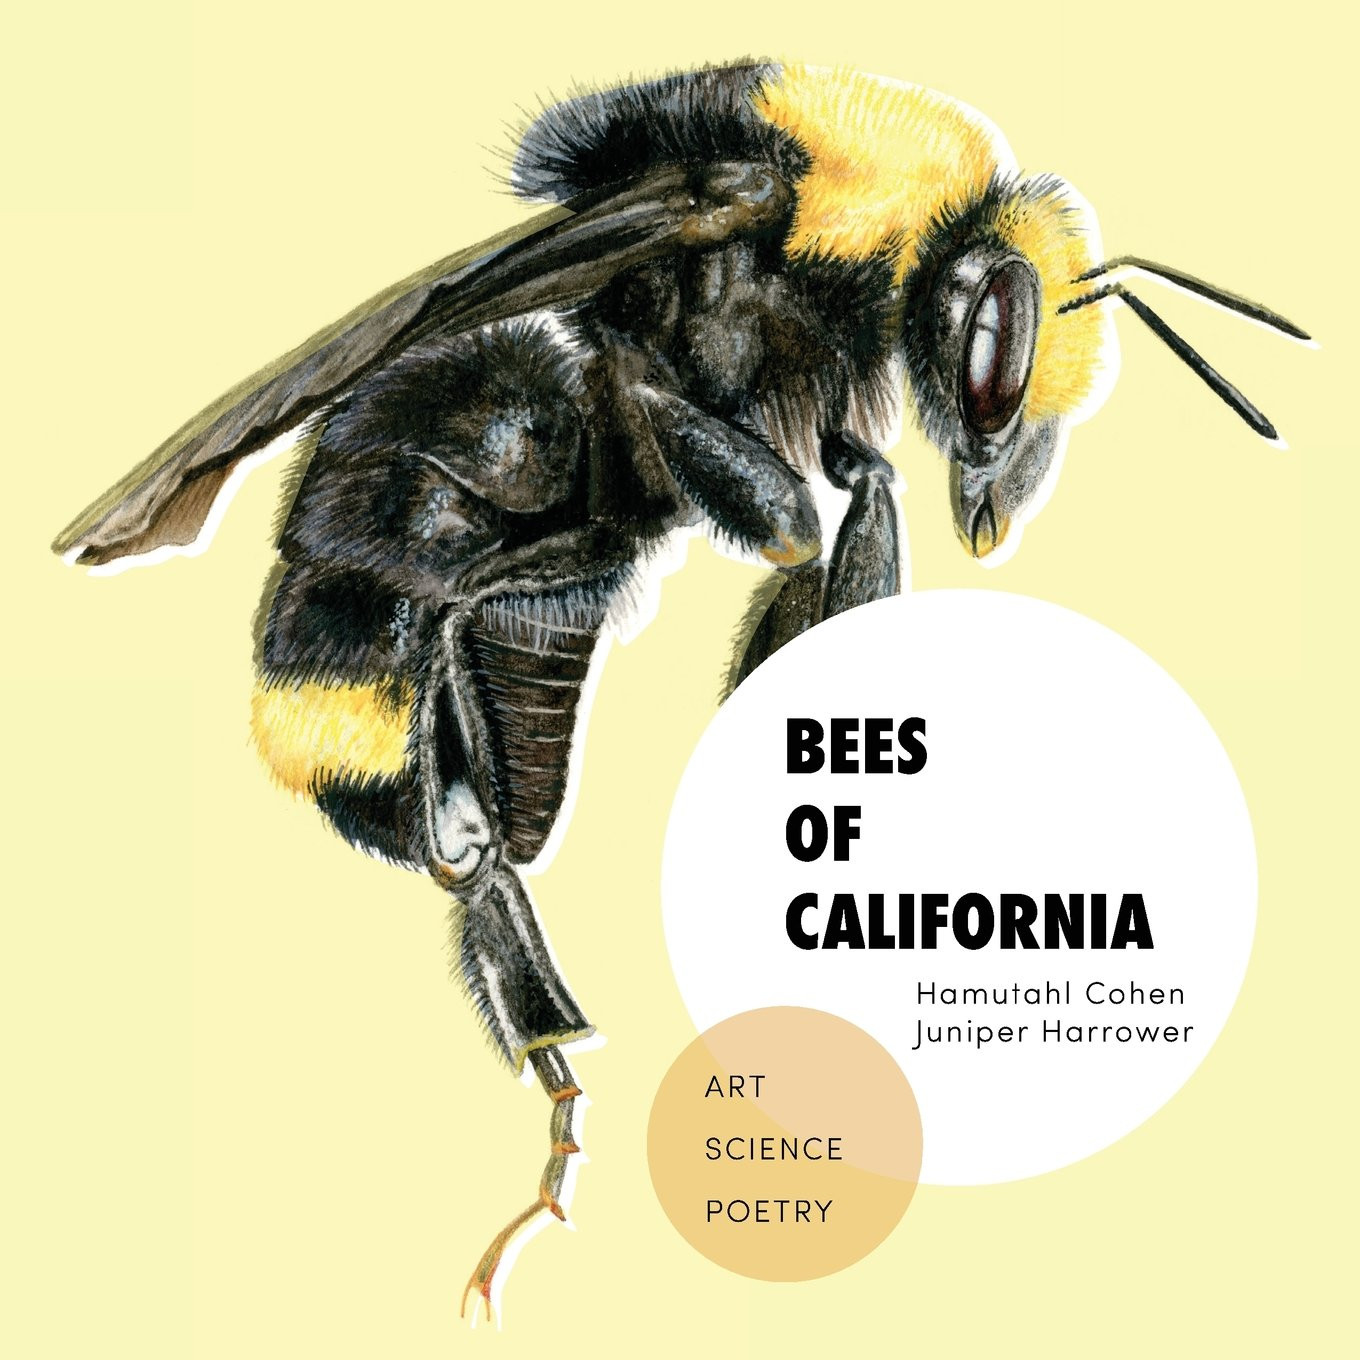 Bees of California book